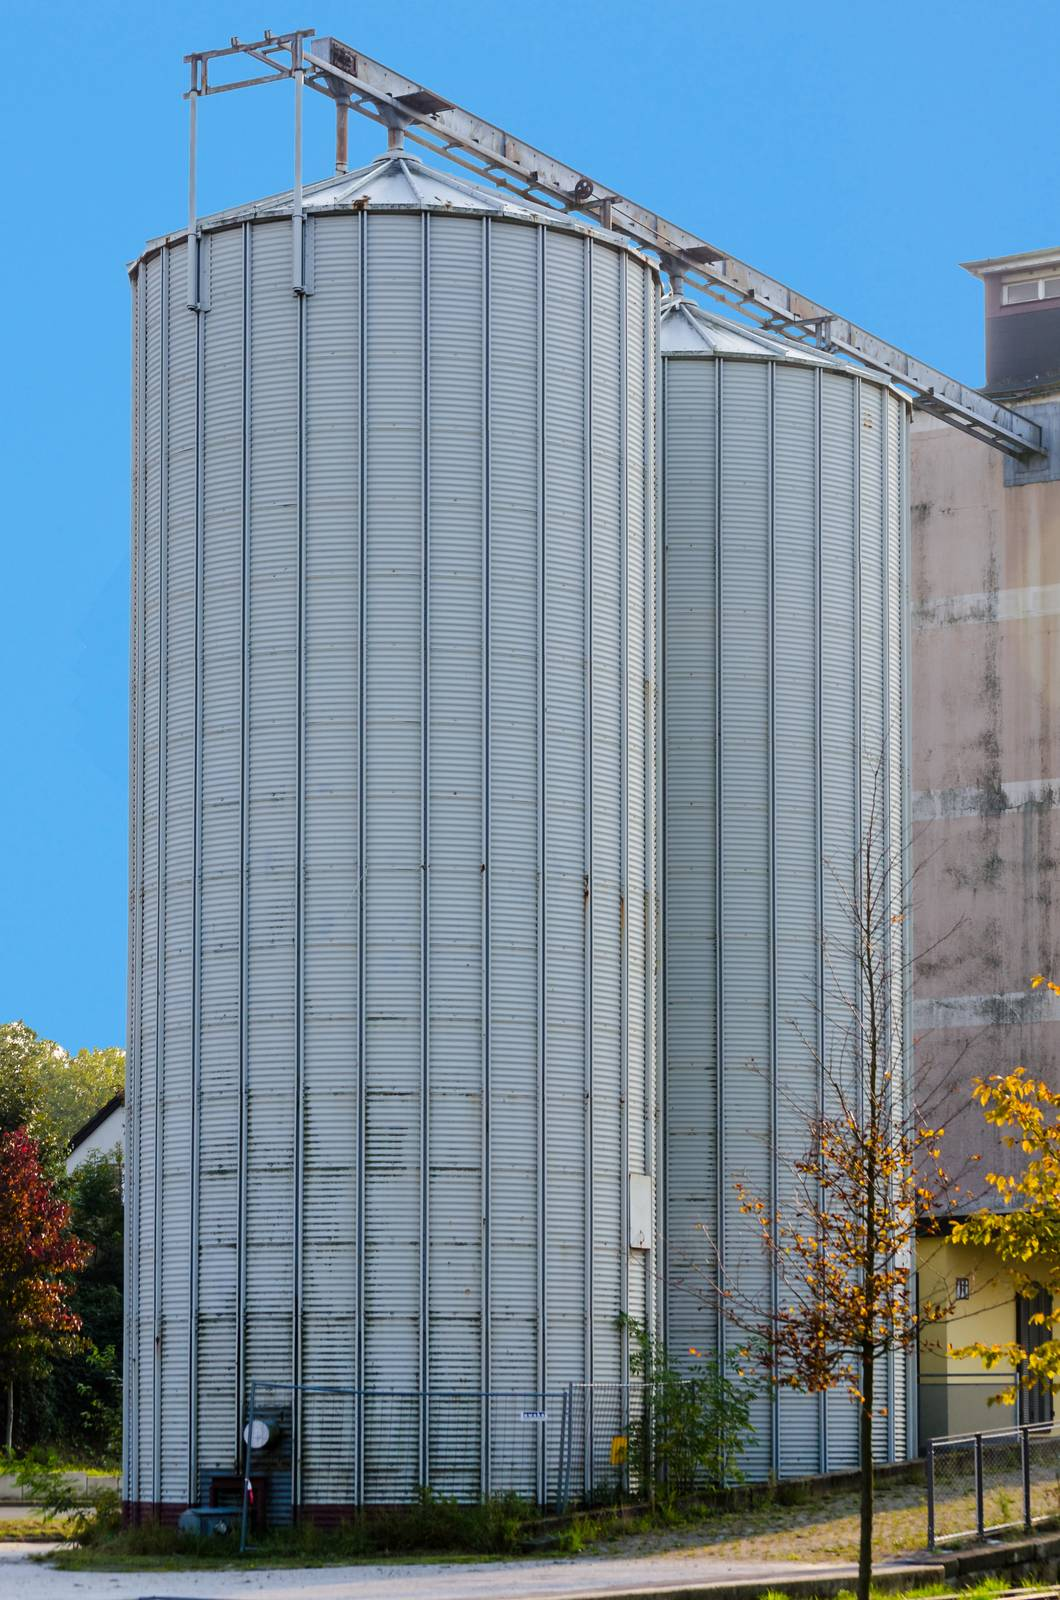 silo, agriculture, farm, agriculture, industry, field - D15306916